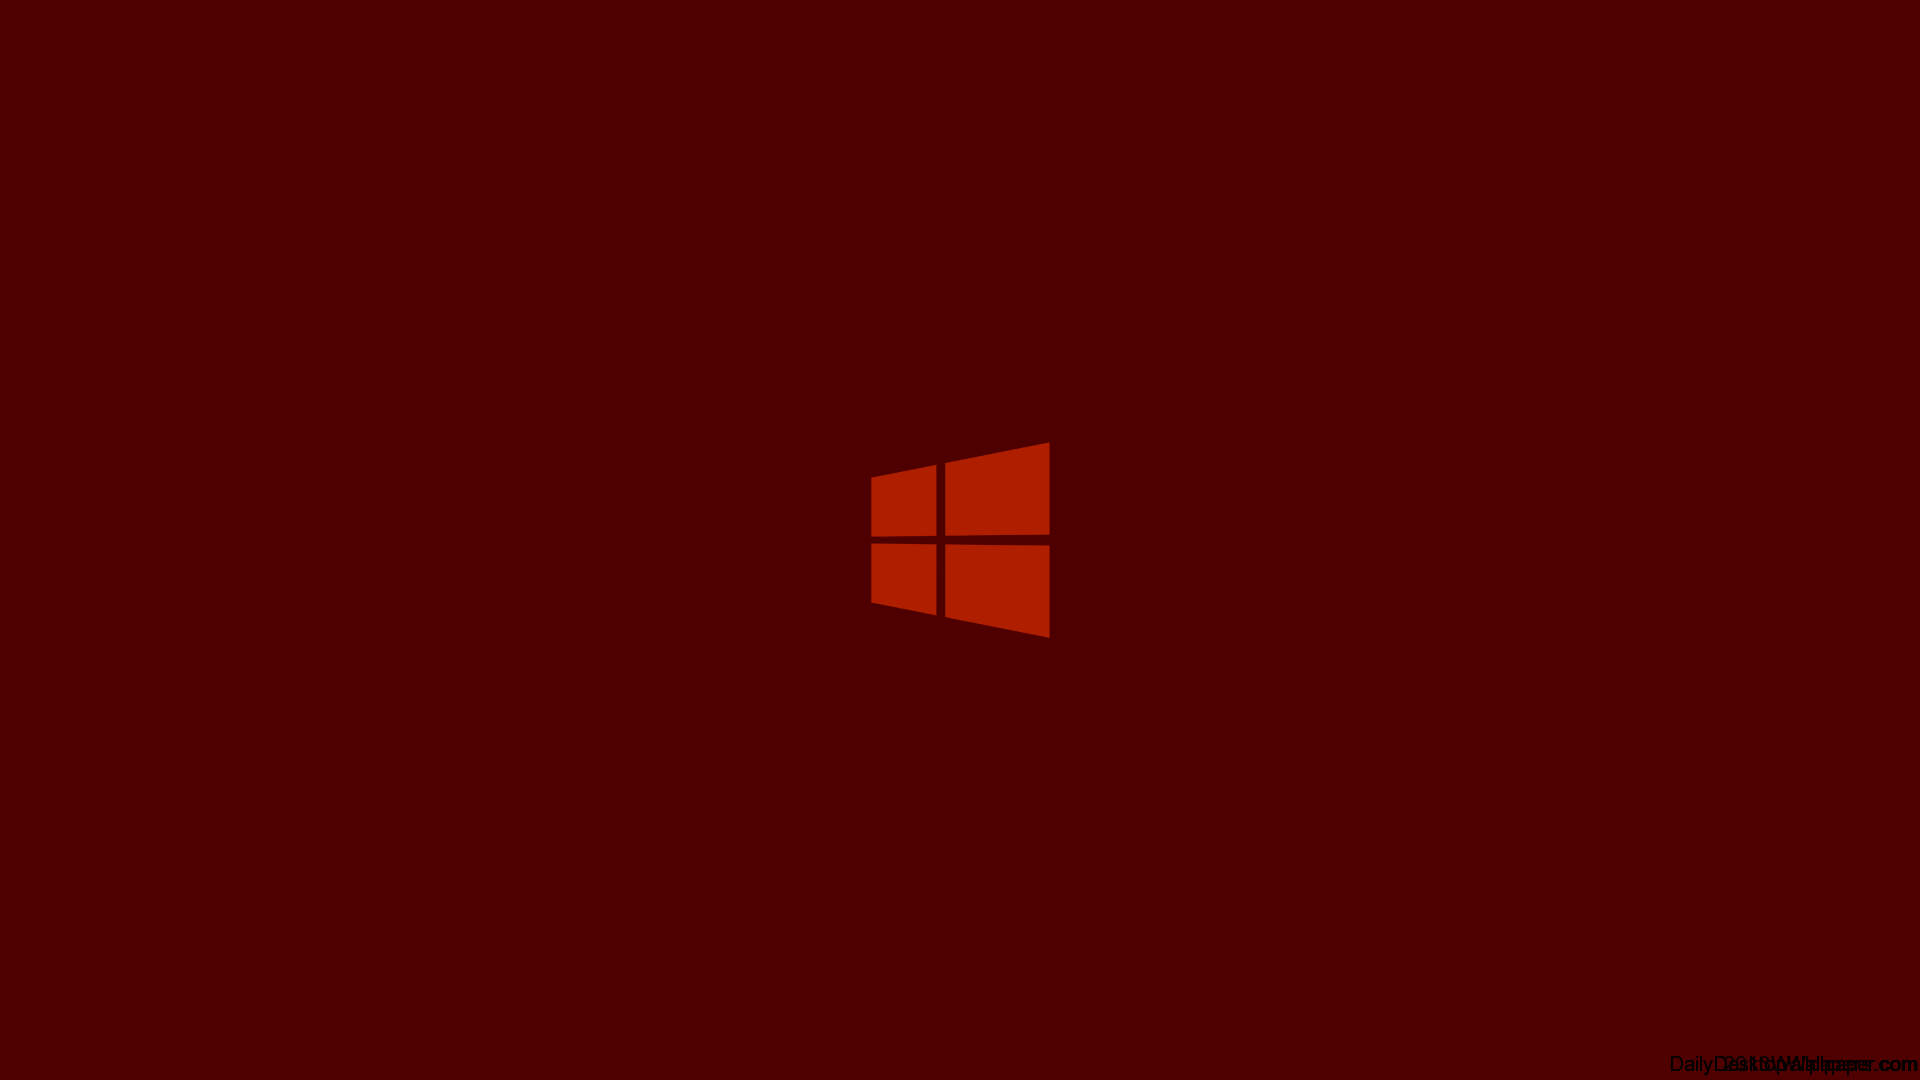 Orange-Windows-8-Logo-Wallpaper